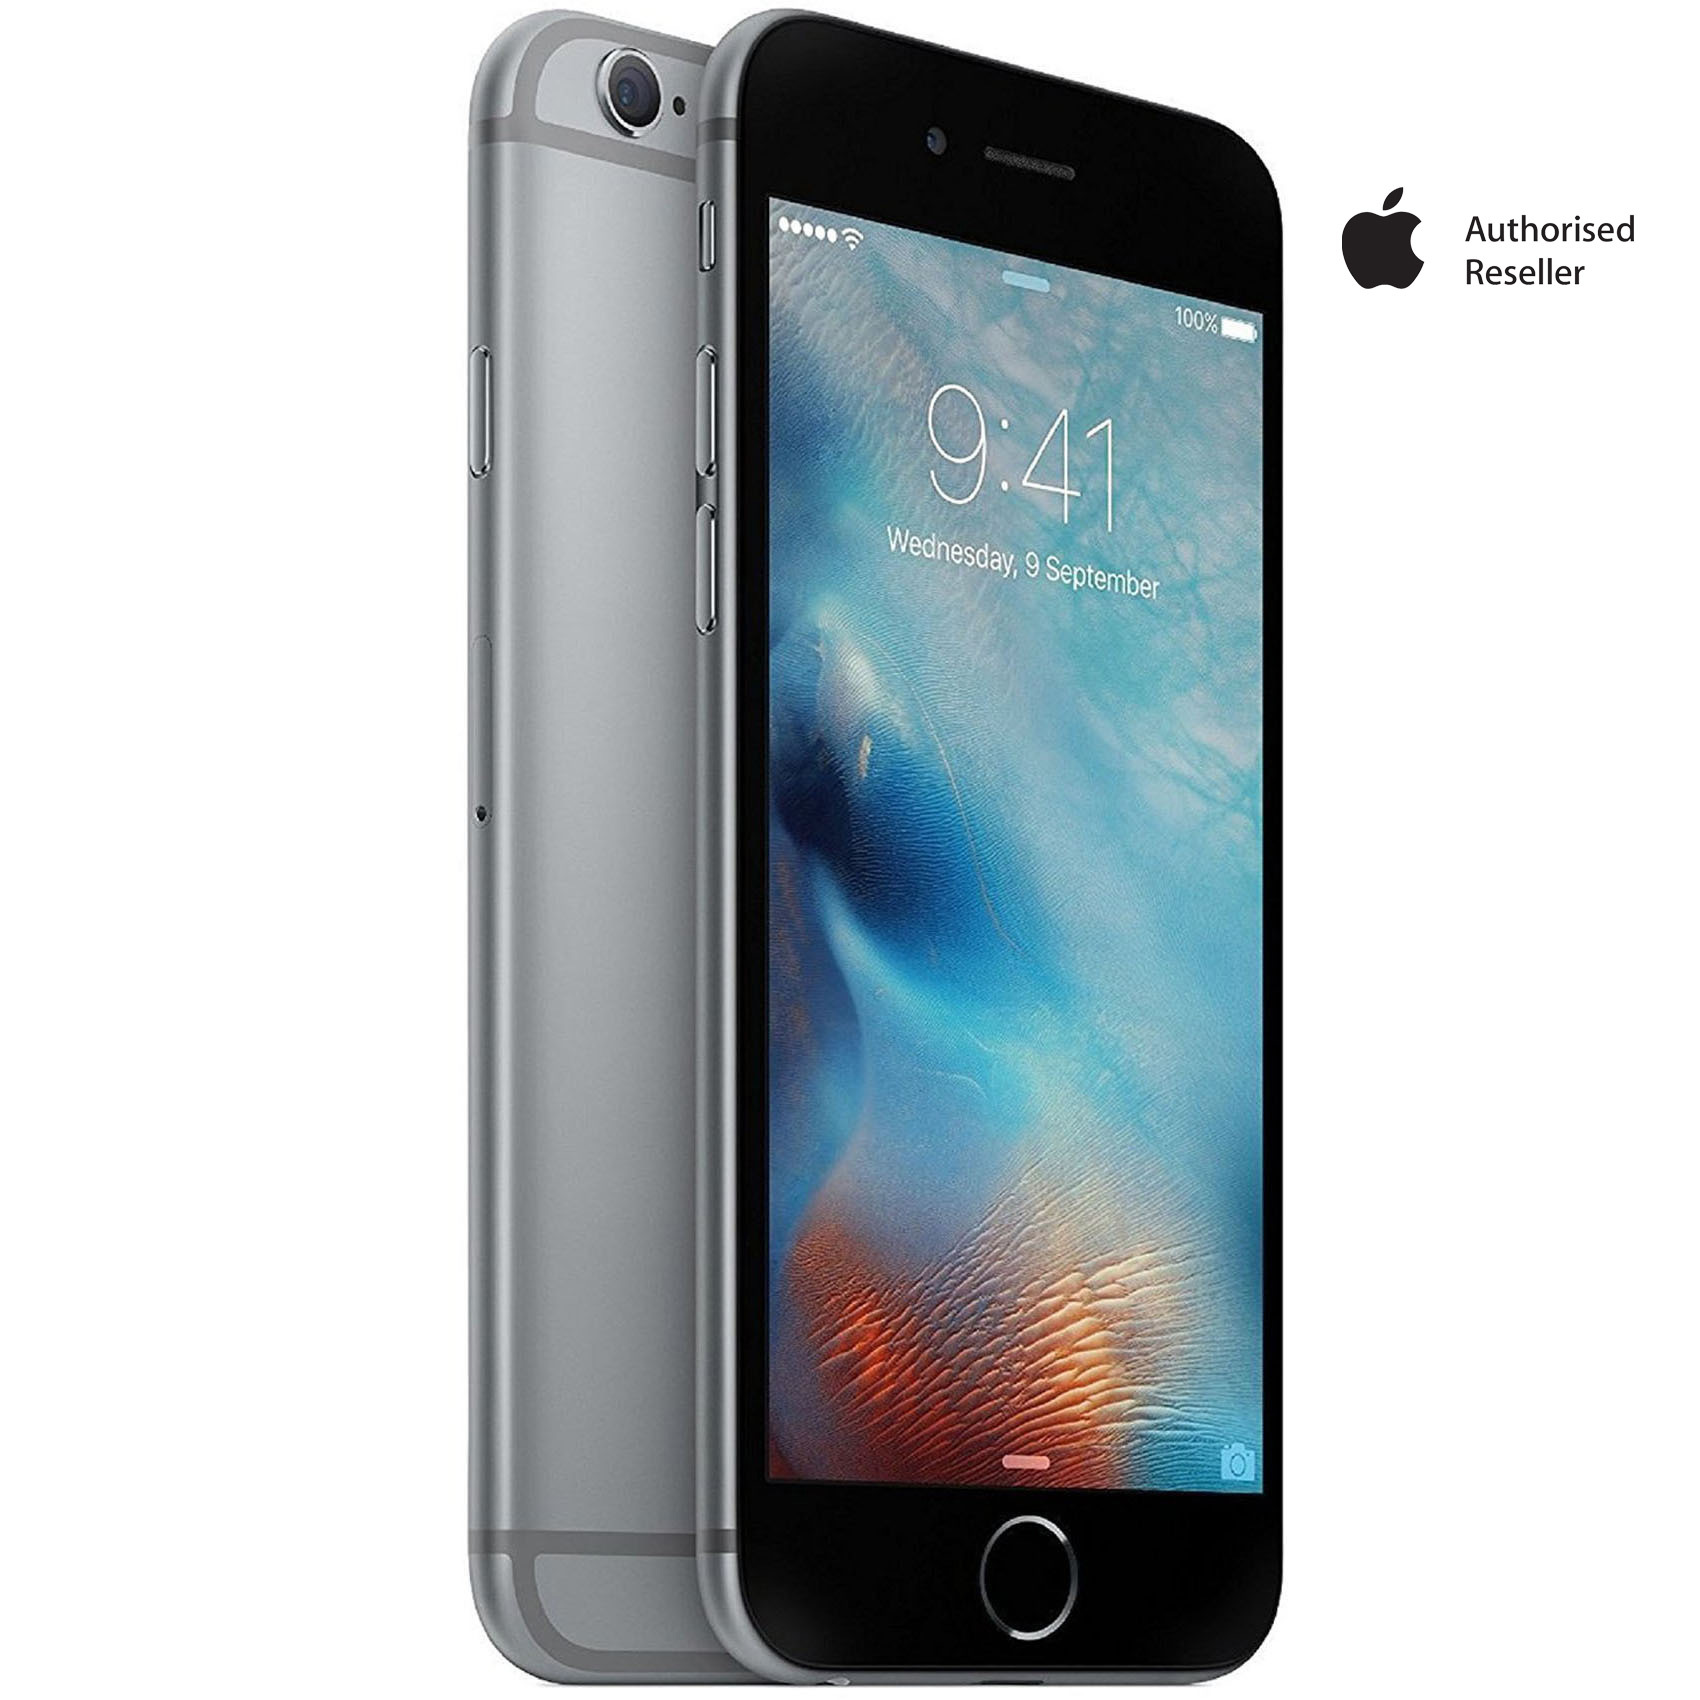 Buy Apple Iphone 6 32gb Space Gray Online In Uae Carrefour Voucher 3 2gb Grey